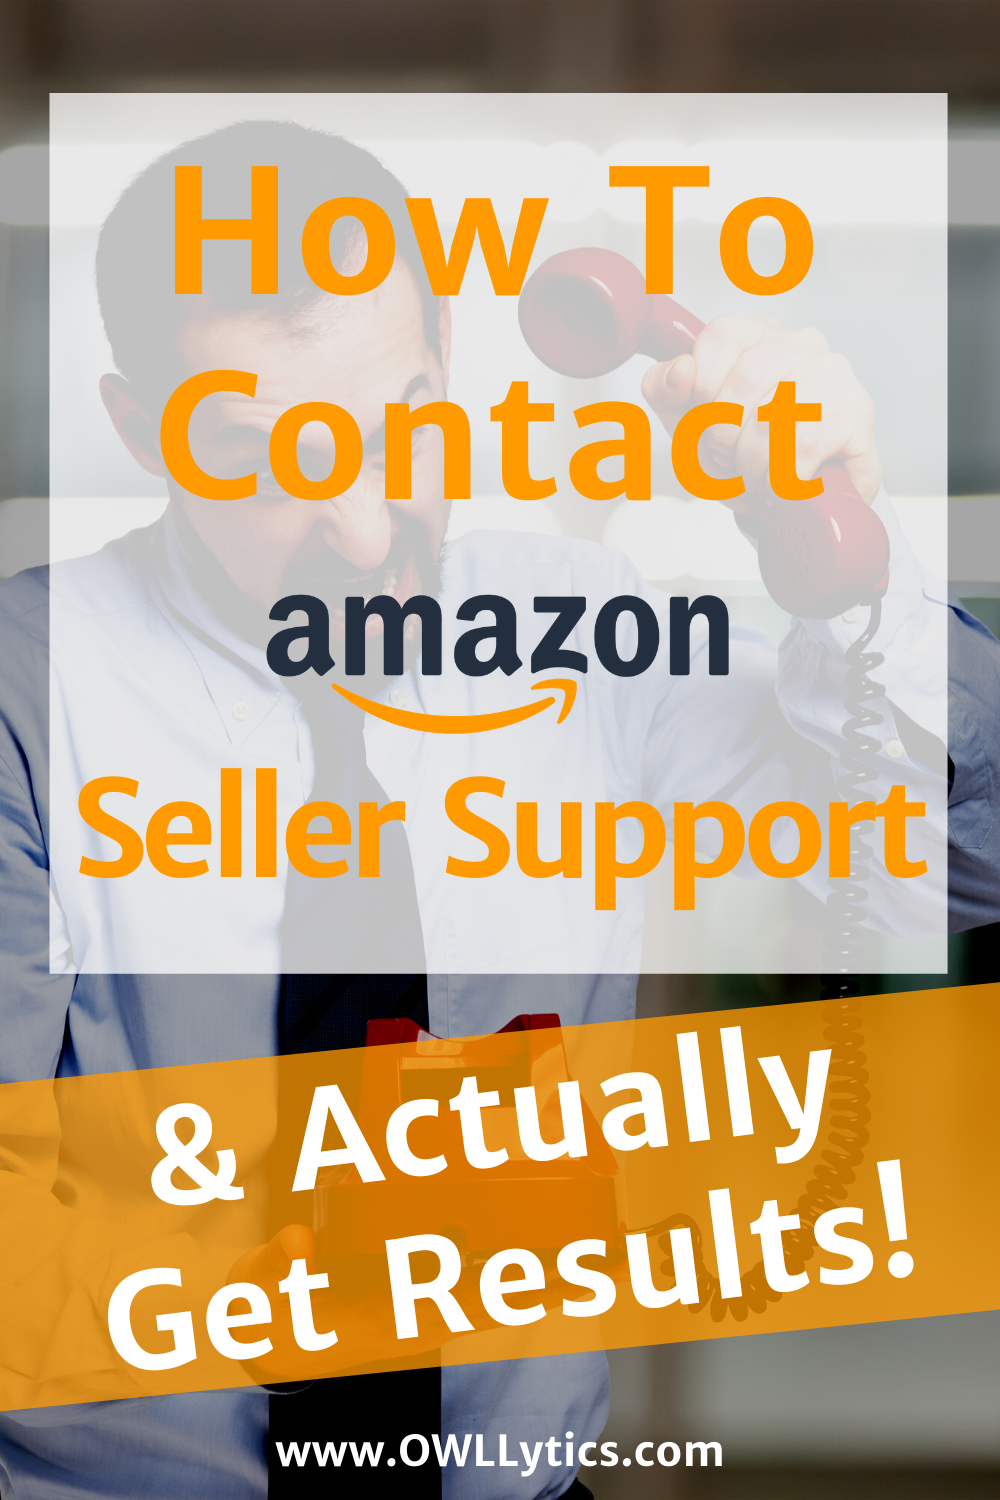 How To Contact Amazon Seller Success & Actually Get Results! - by OWLLytics